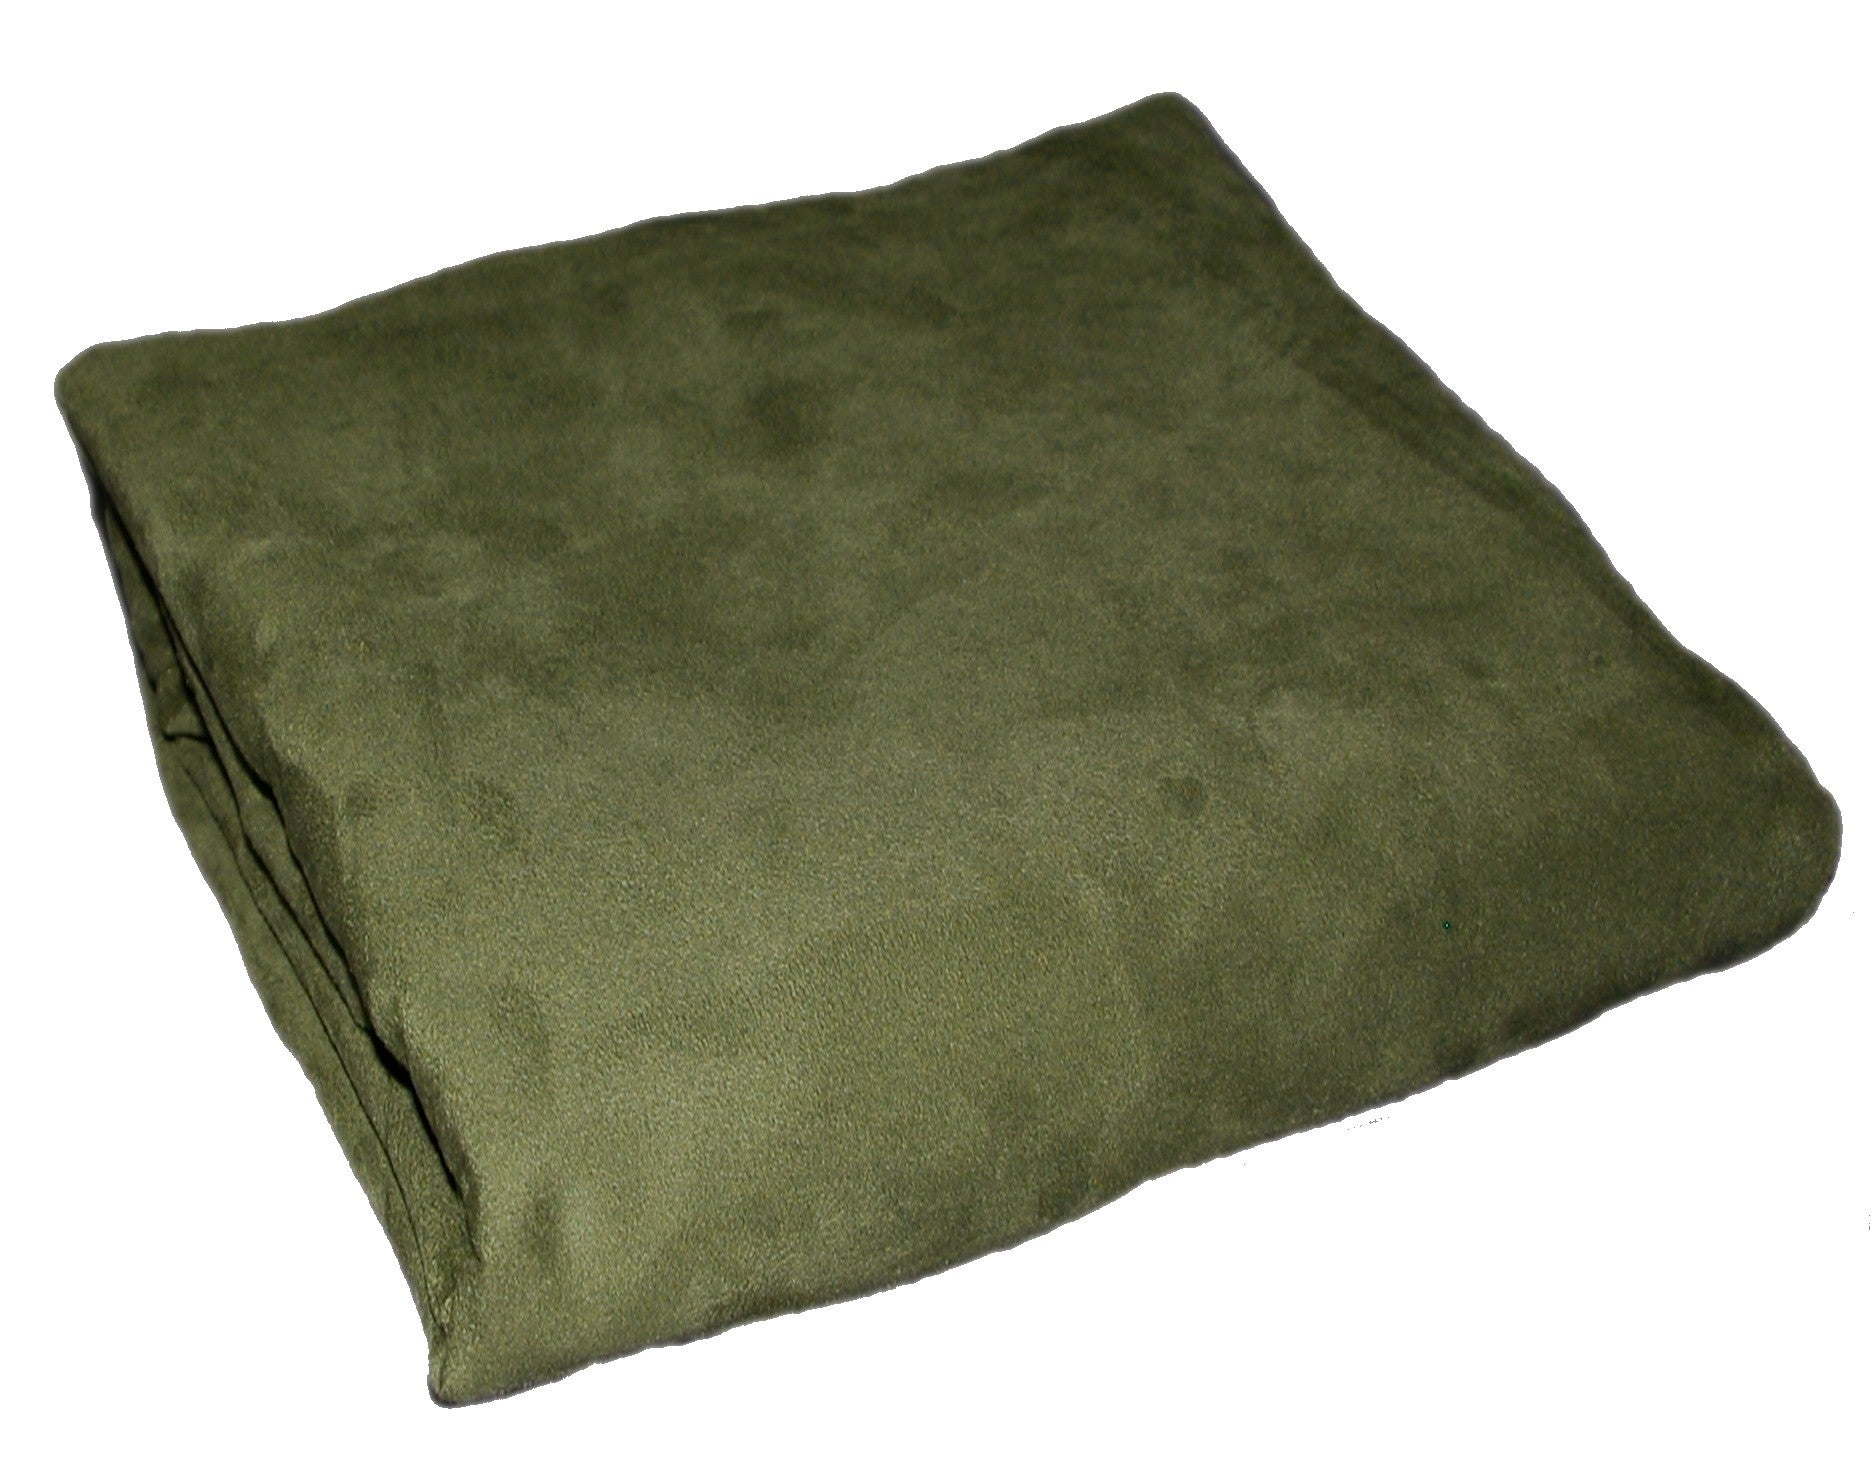 New Cover for 6 Foot Cozy Bean Bag Chair